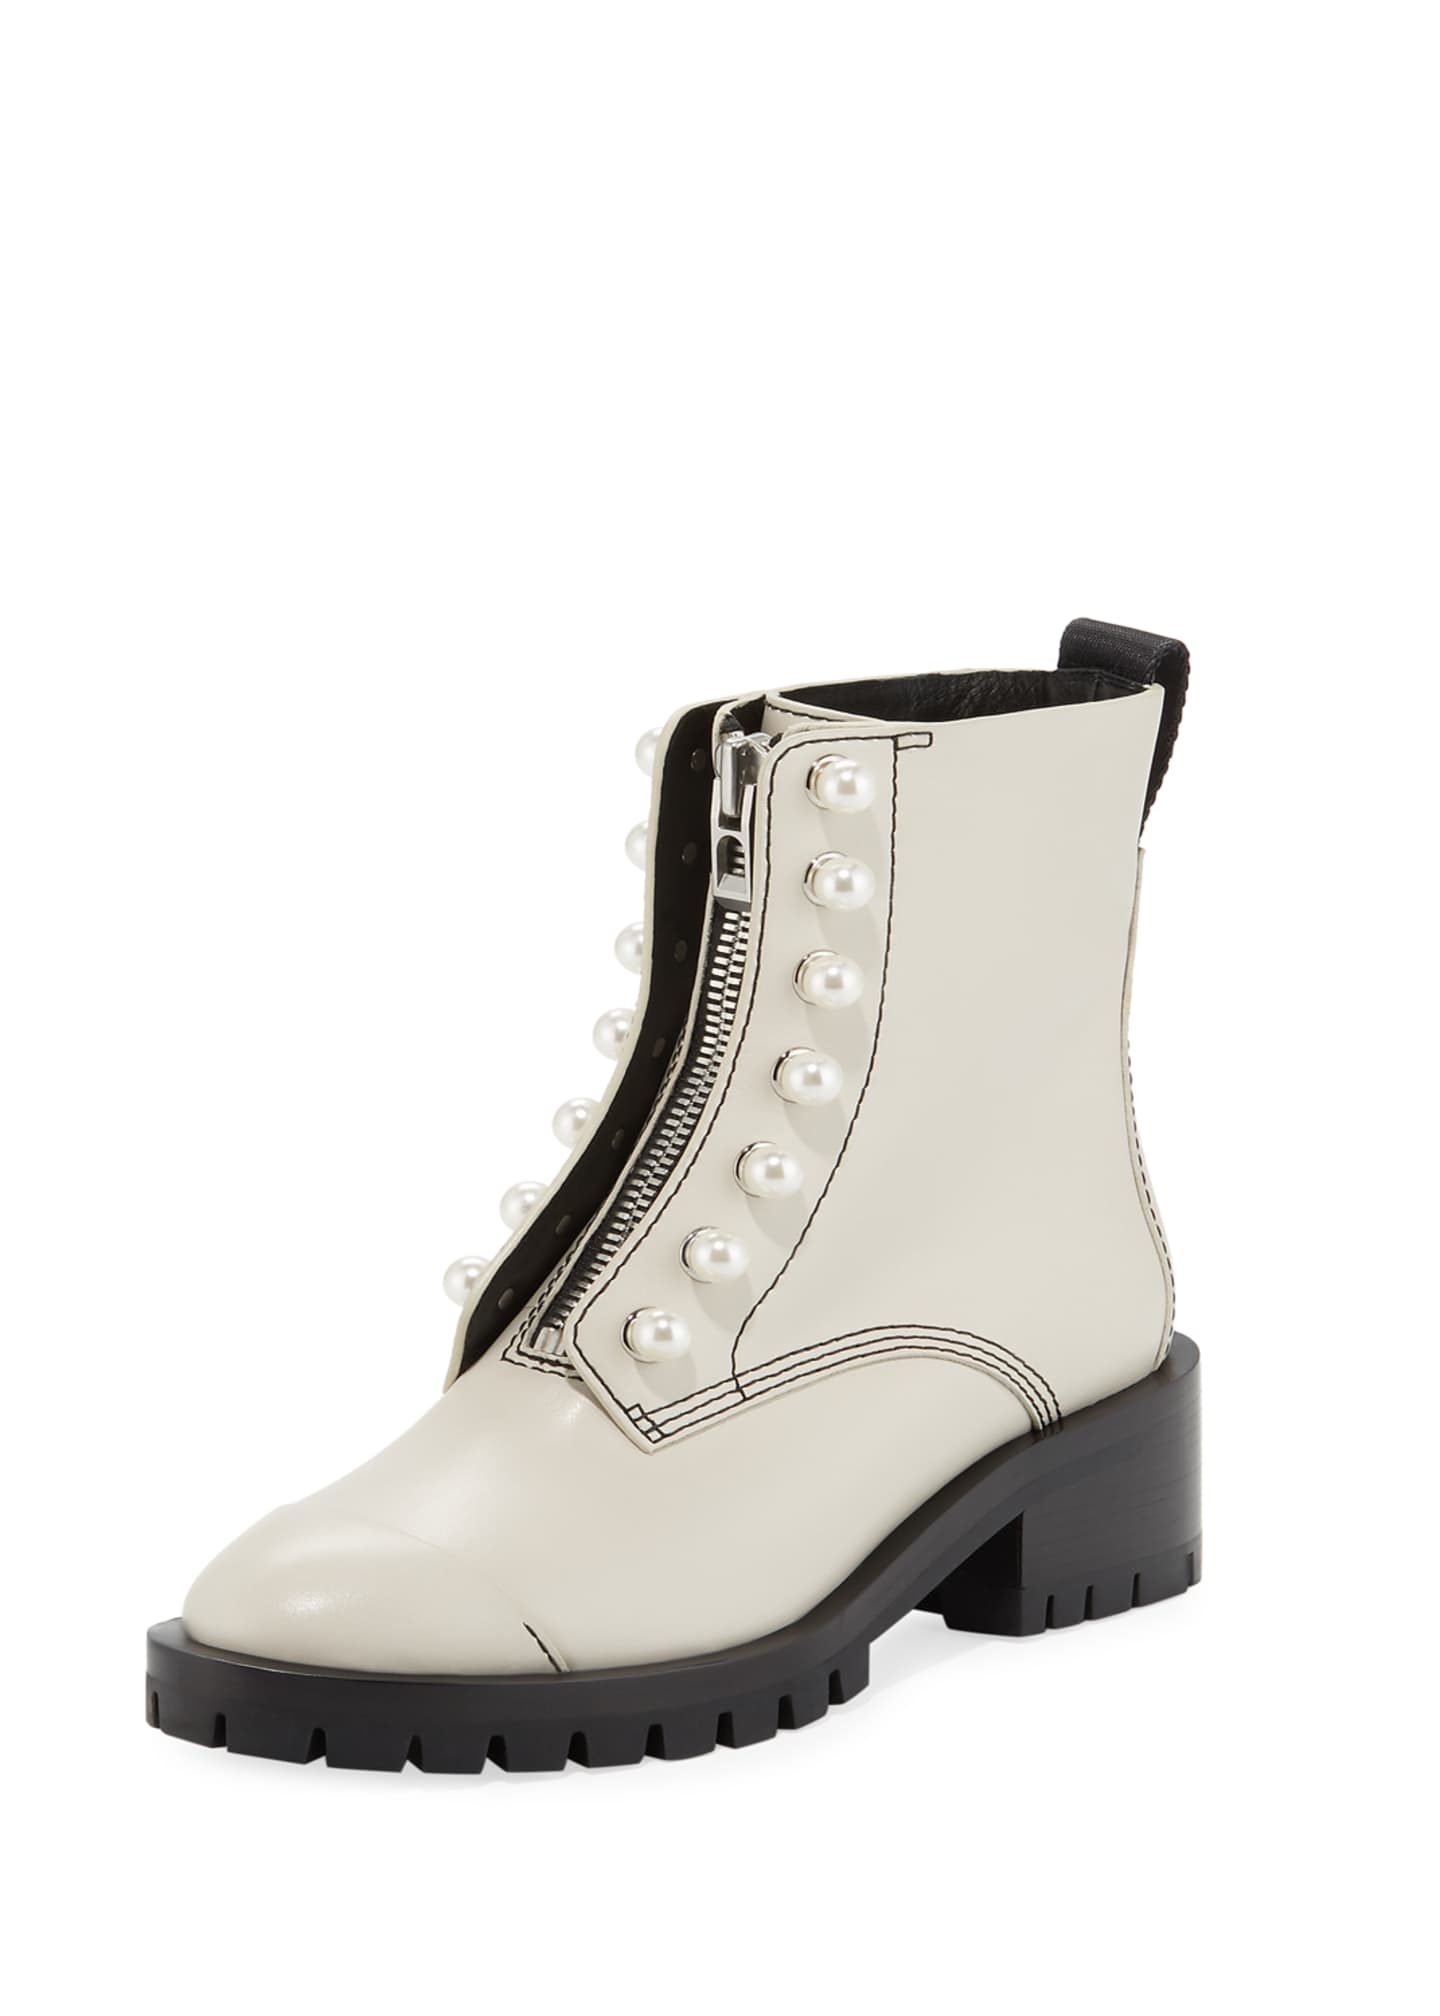 3.1 Phillip Lim Hayett Pearly-Studded Boots